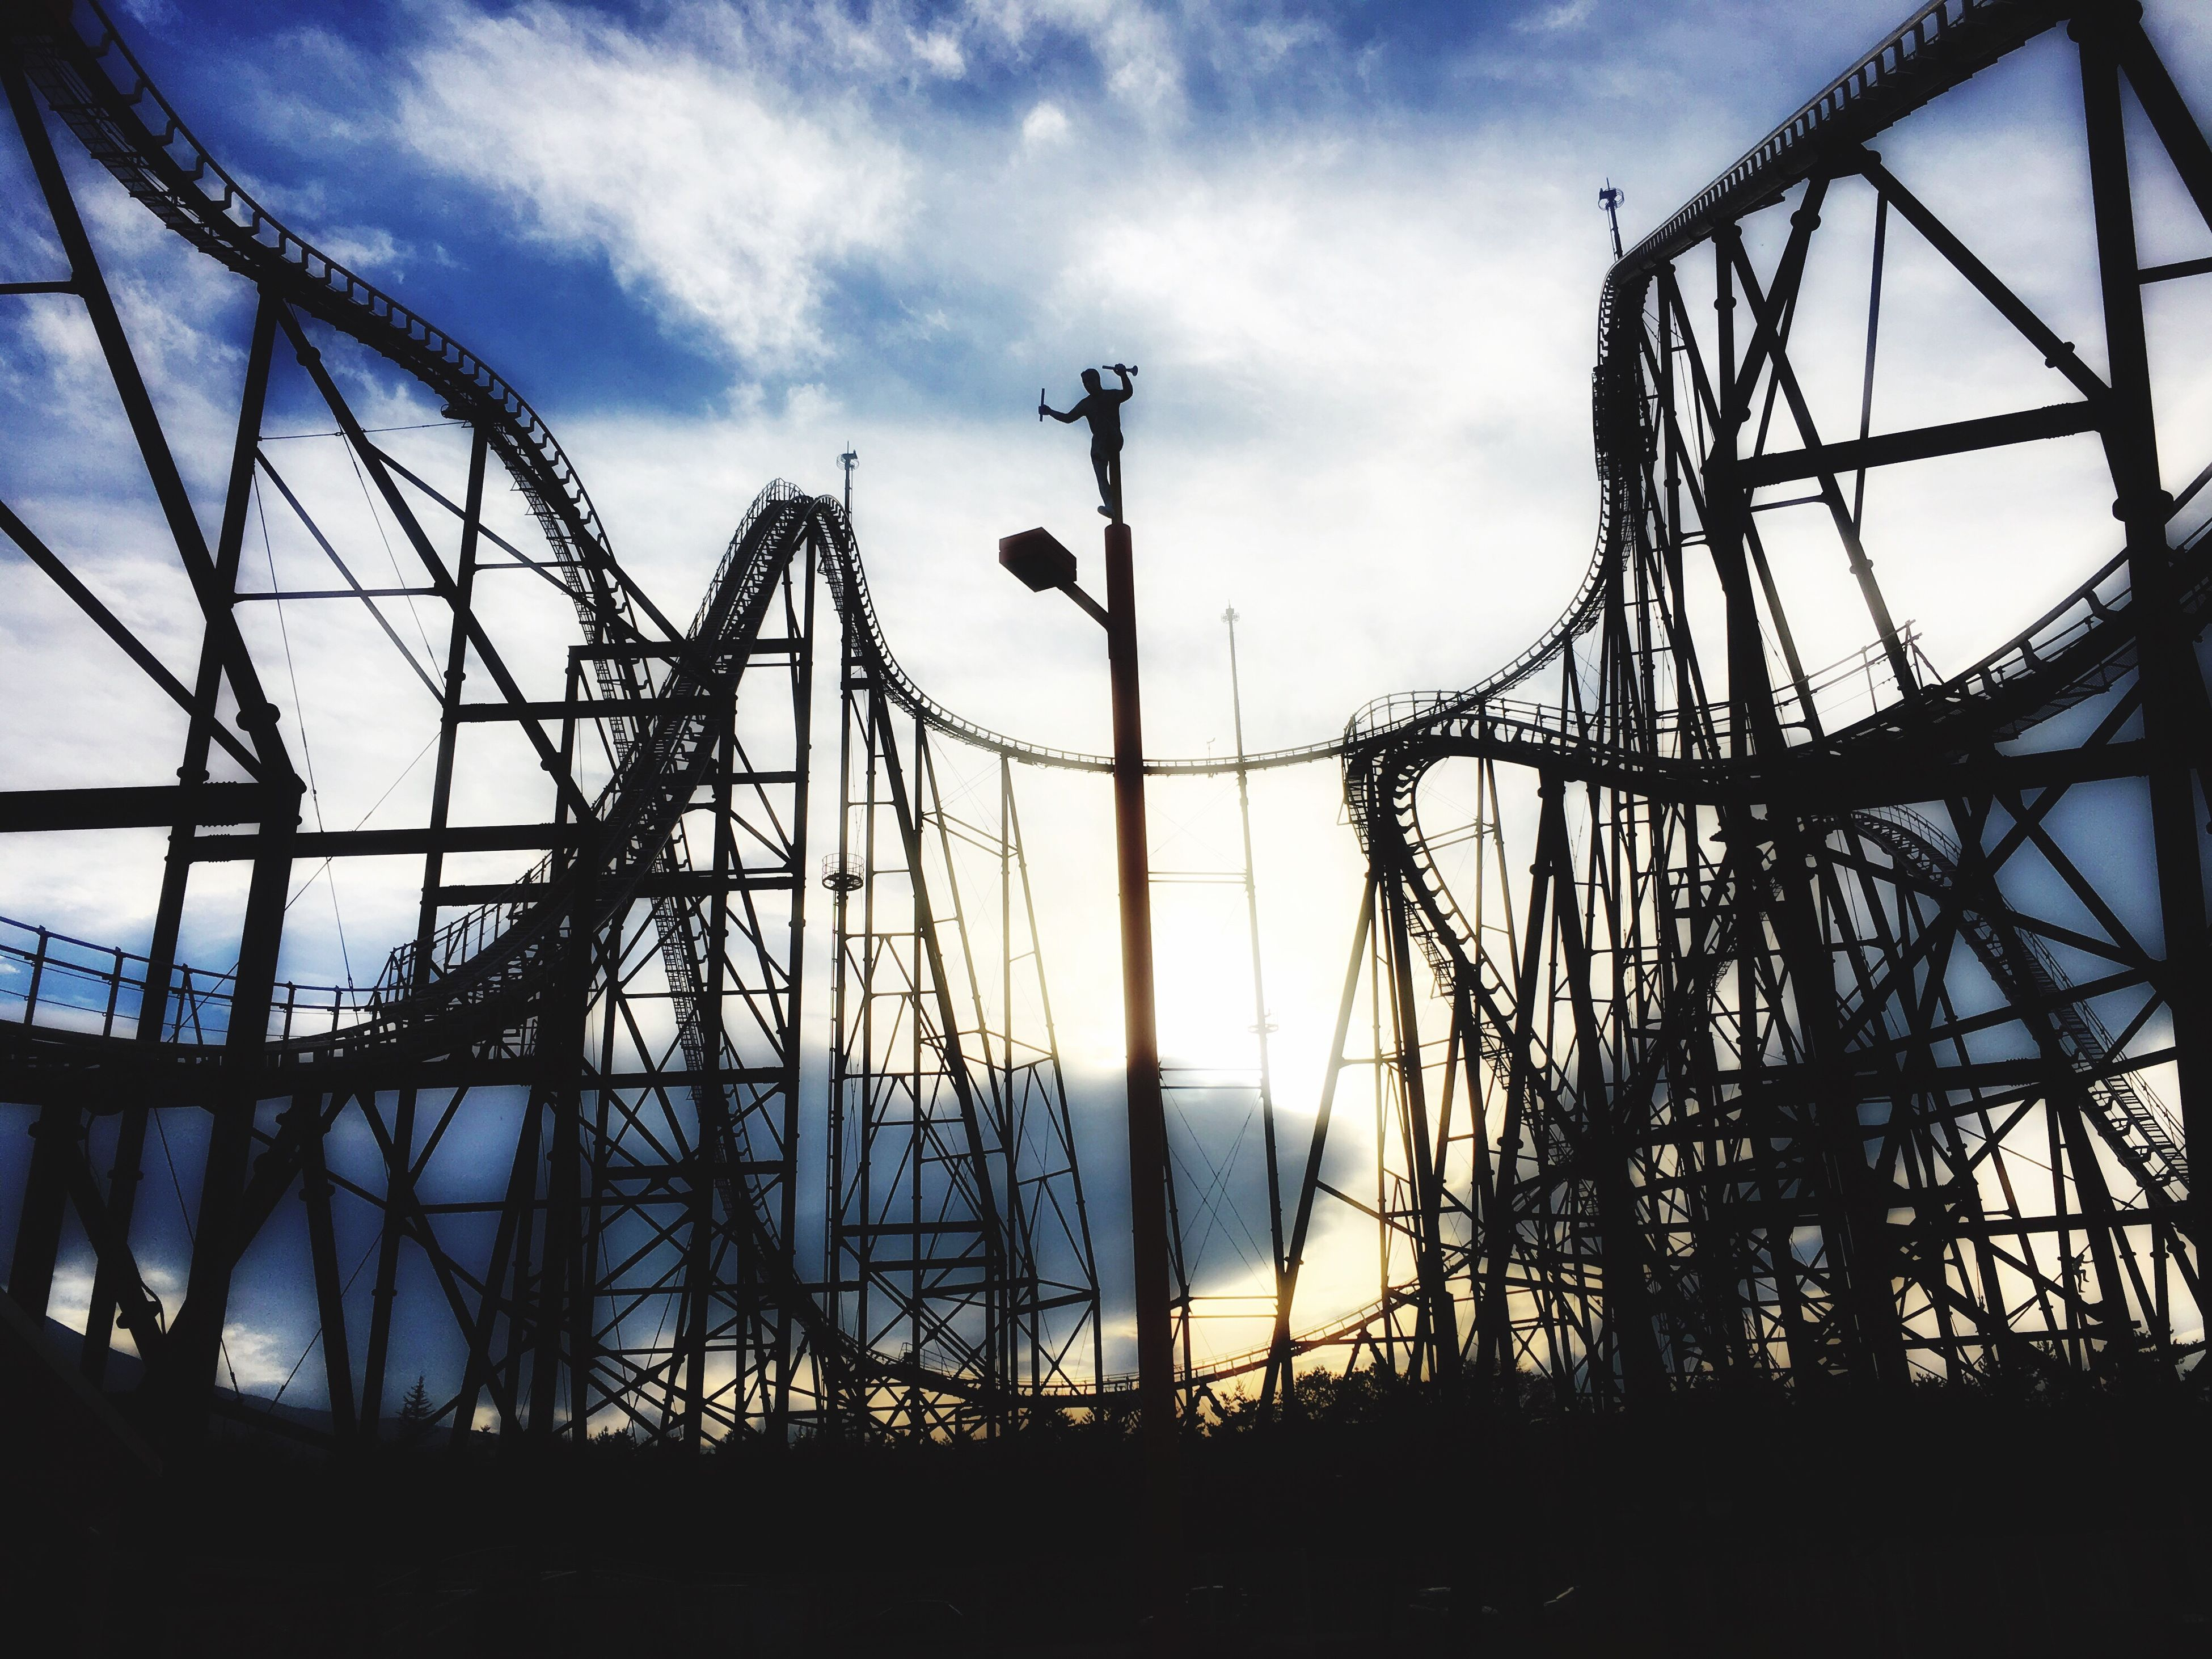 sky, metal, cloud - sky, amusement park, sunset, low angle view, no people, rollercoaster, silhouette, outdoors, tree, nature, day